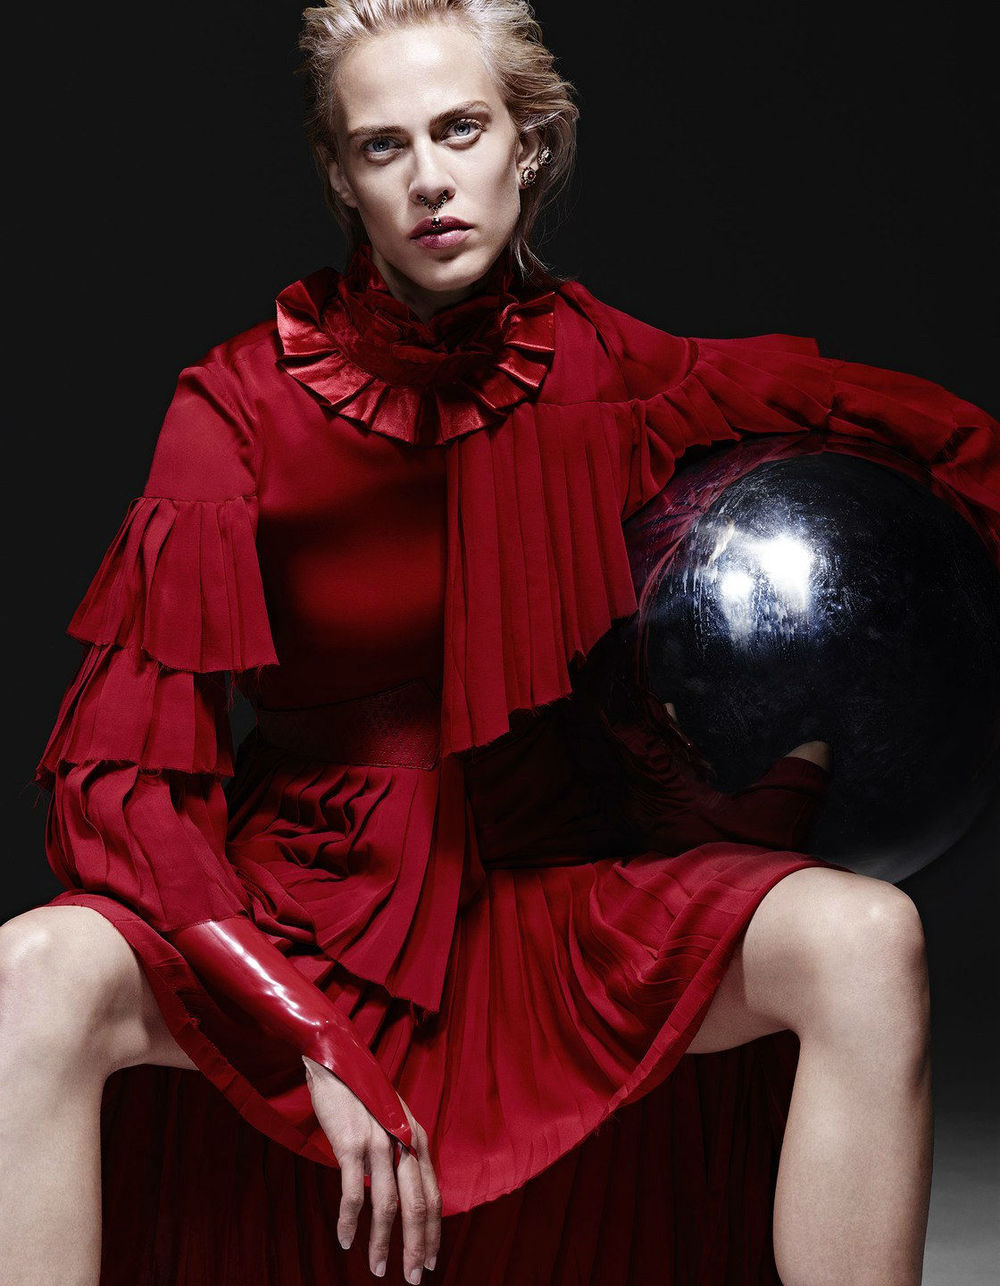 Liz Collins / Aymeline Valade / Vogue Japan